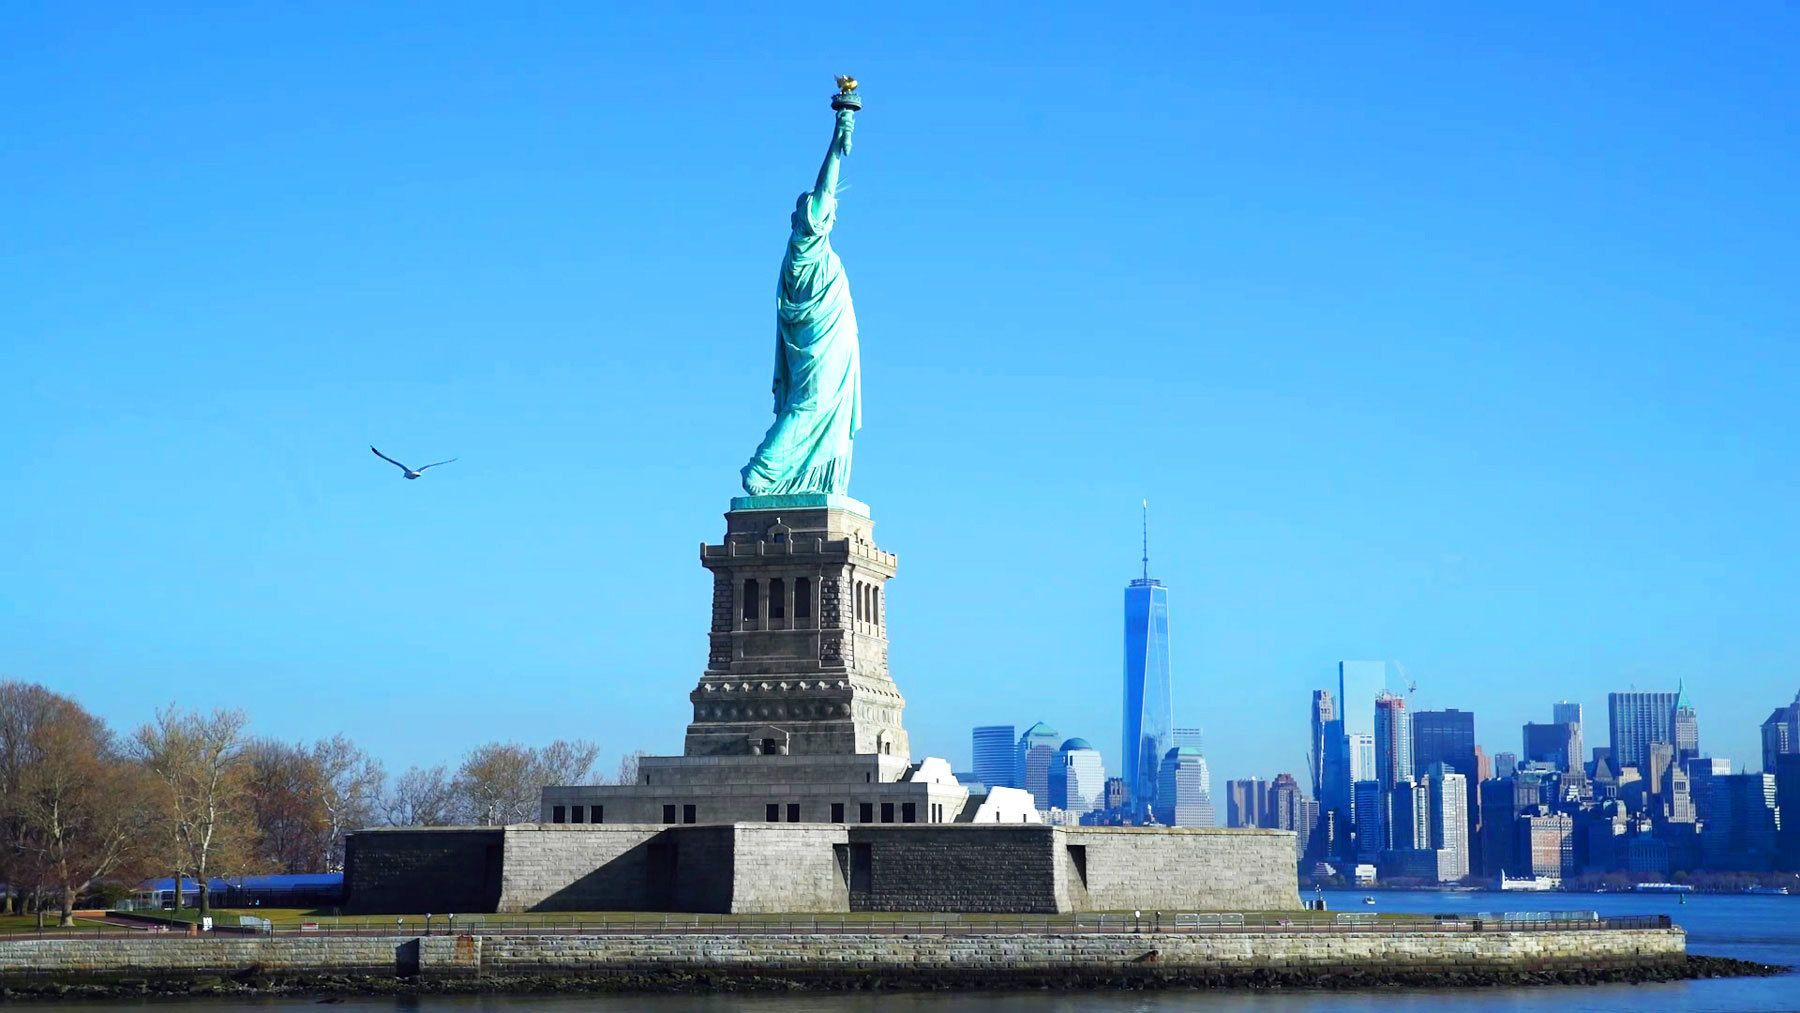 Statue of Liberty & Ellis Island Tour with Pedestal Access